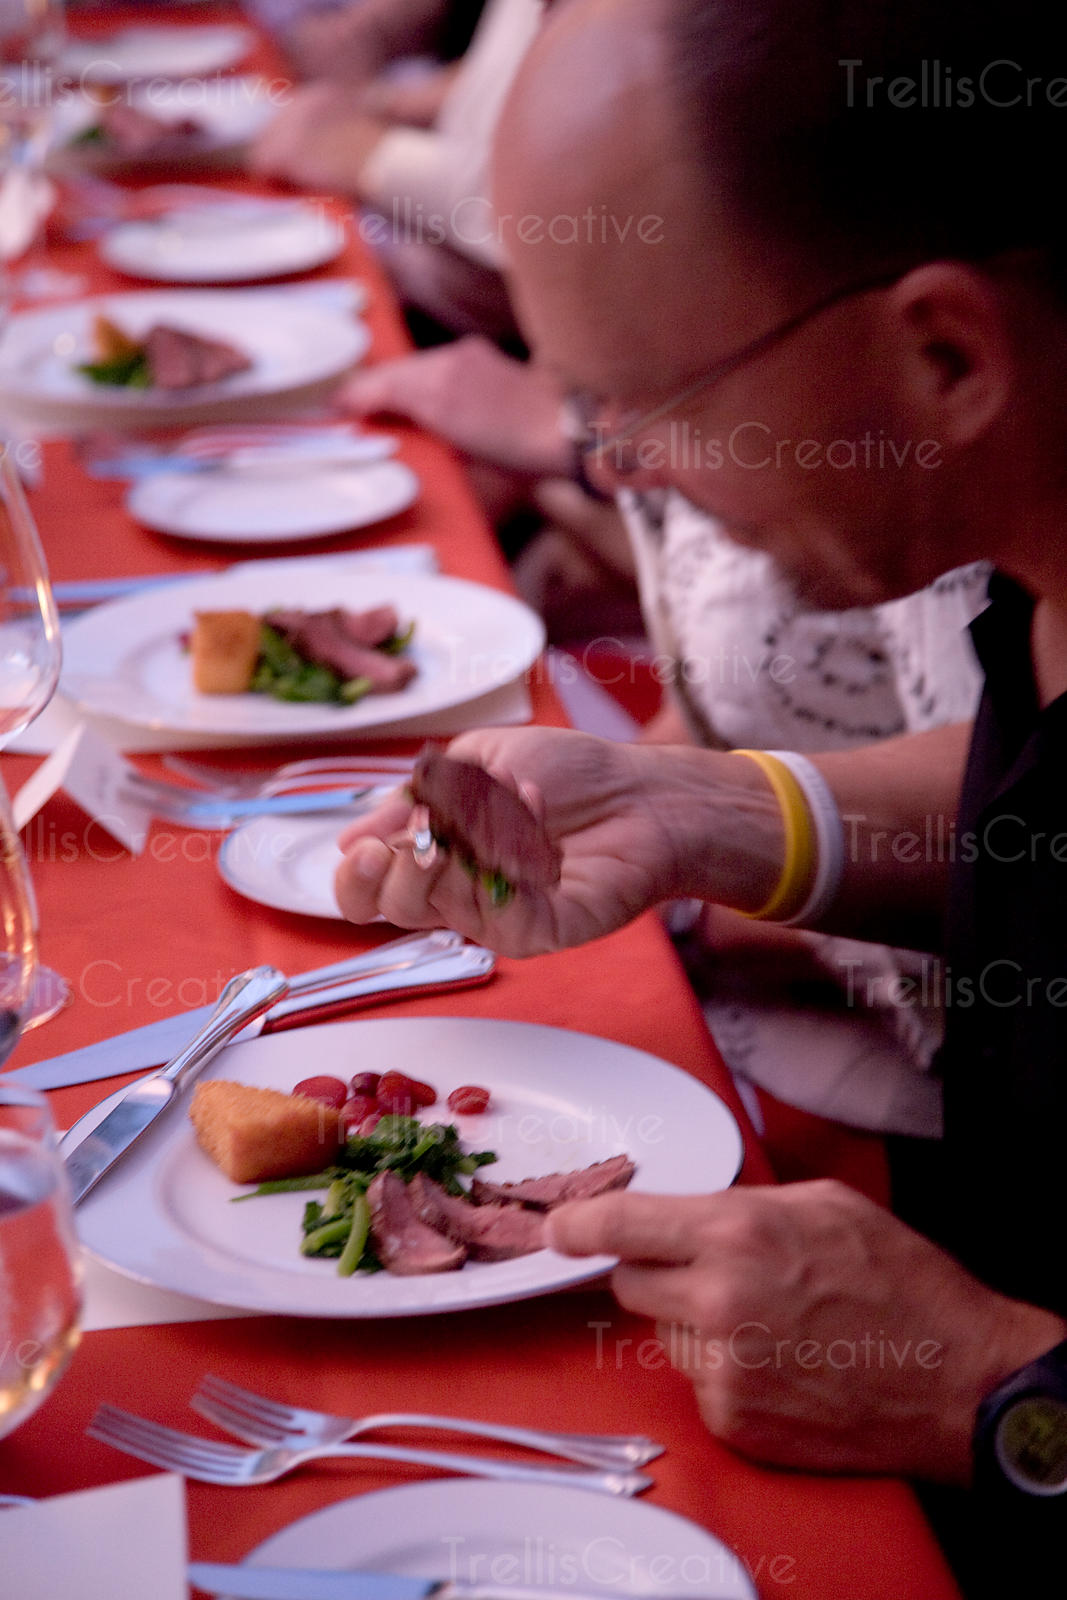 A guest in motion eating at a party